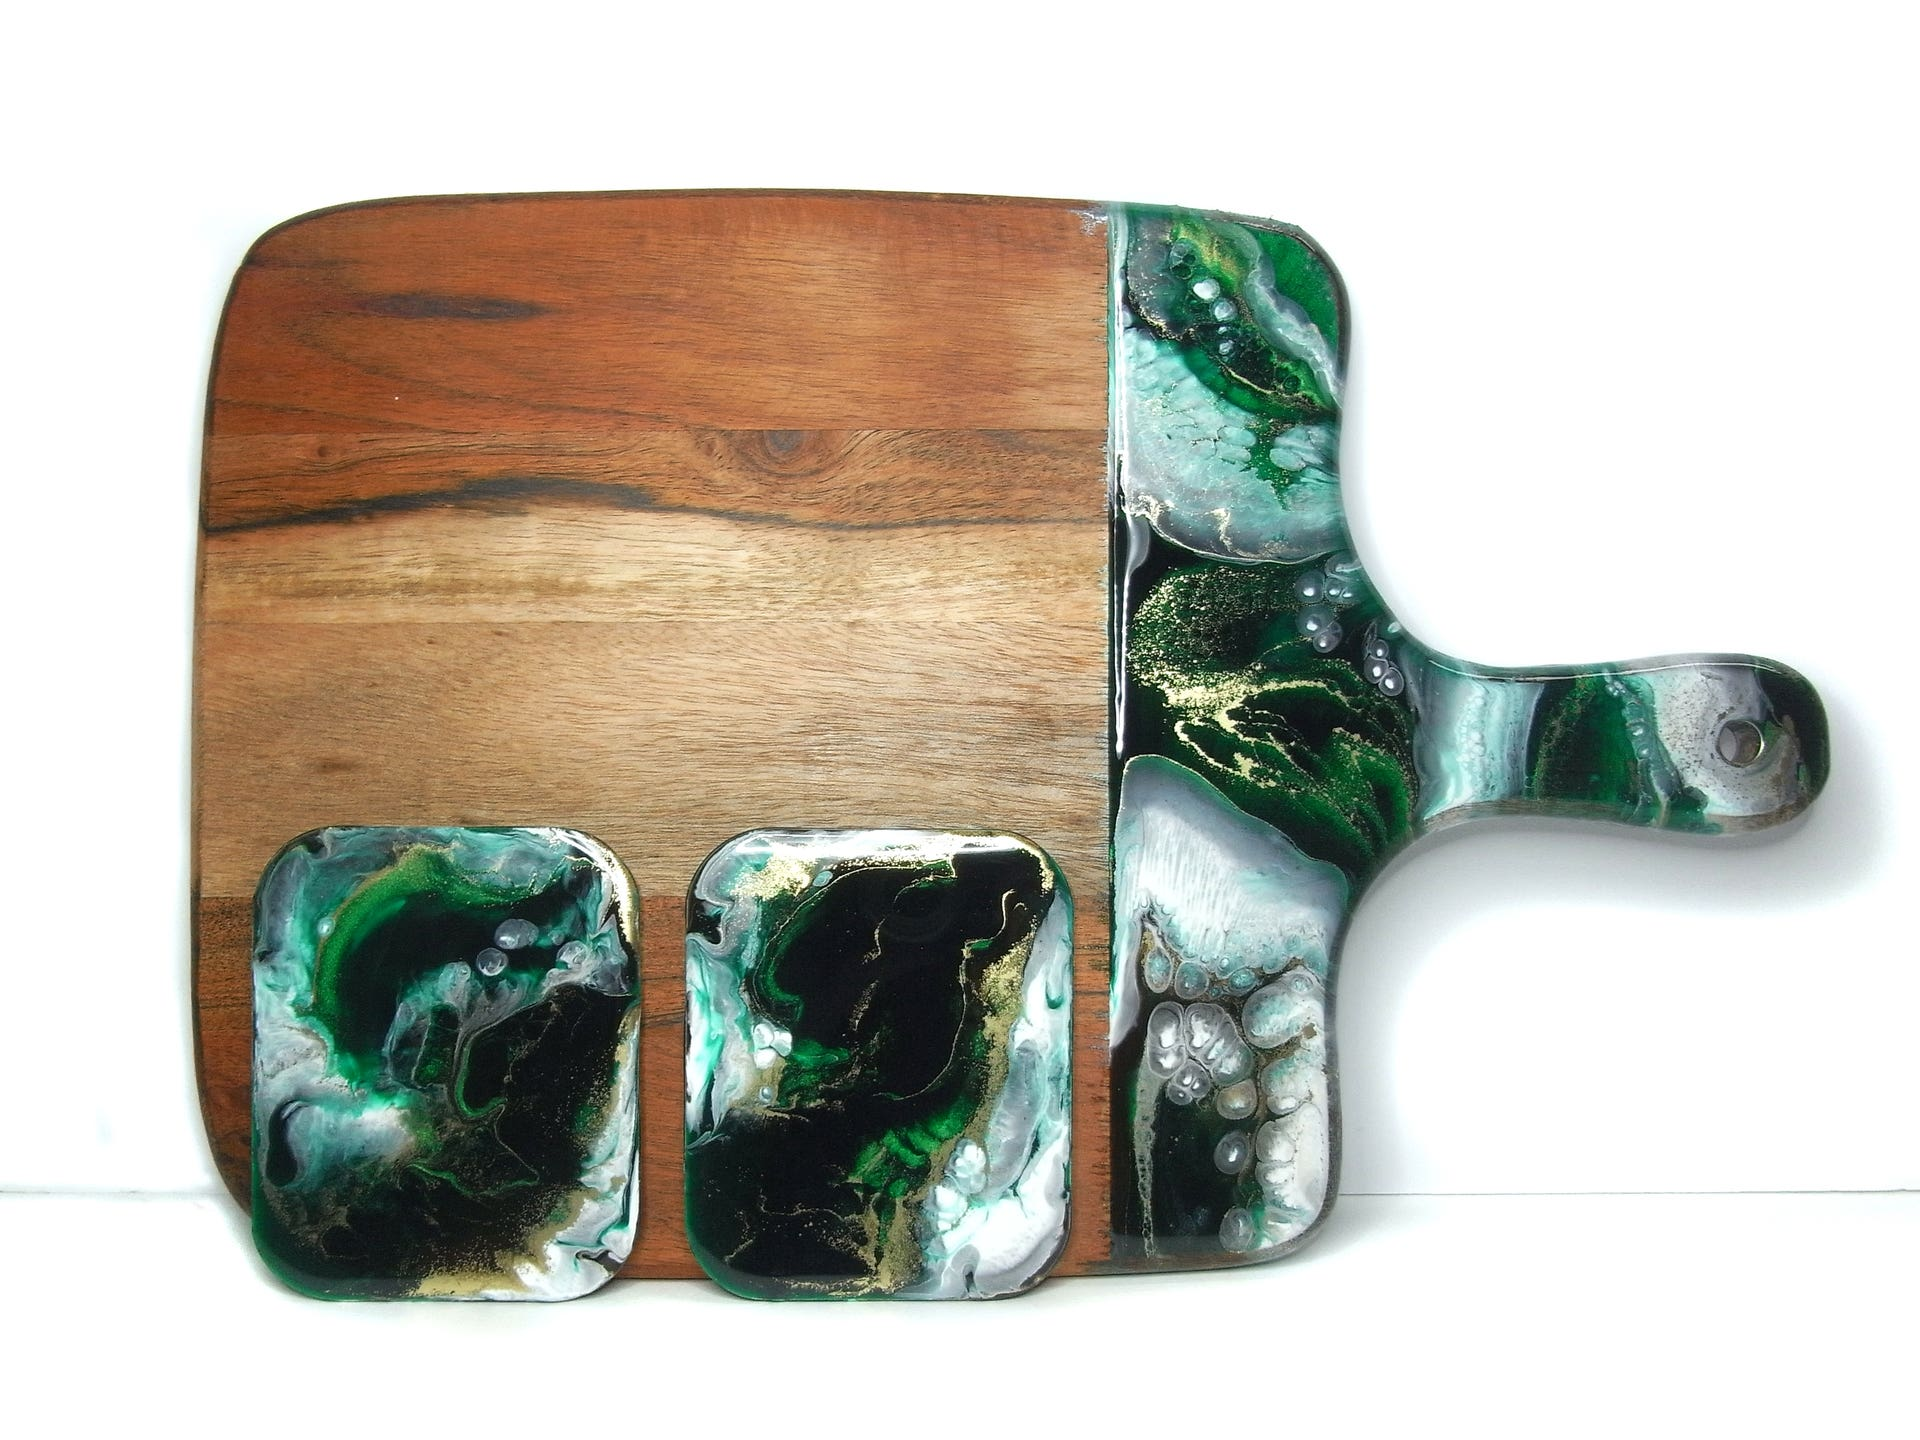 Emerald, black and gold square resin and wood cheeseboard and coasters set